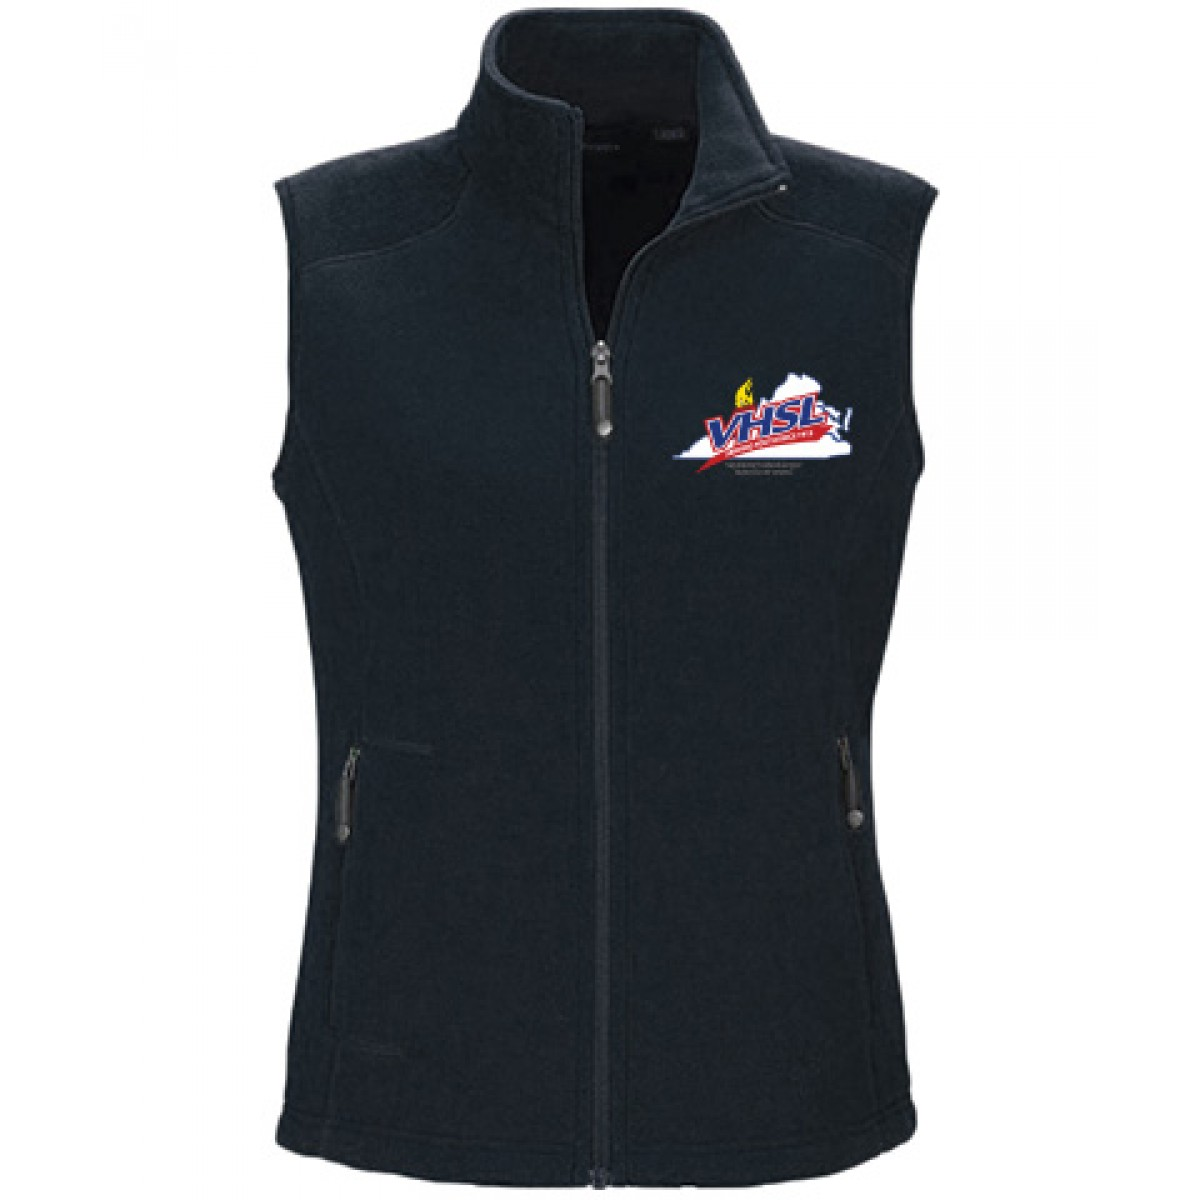 Embroidered Ladies Vest